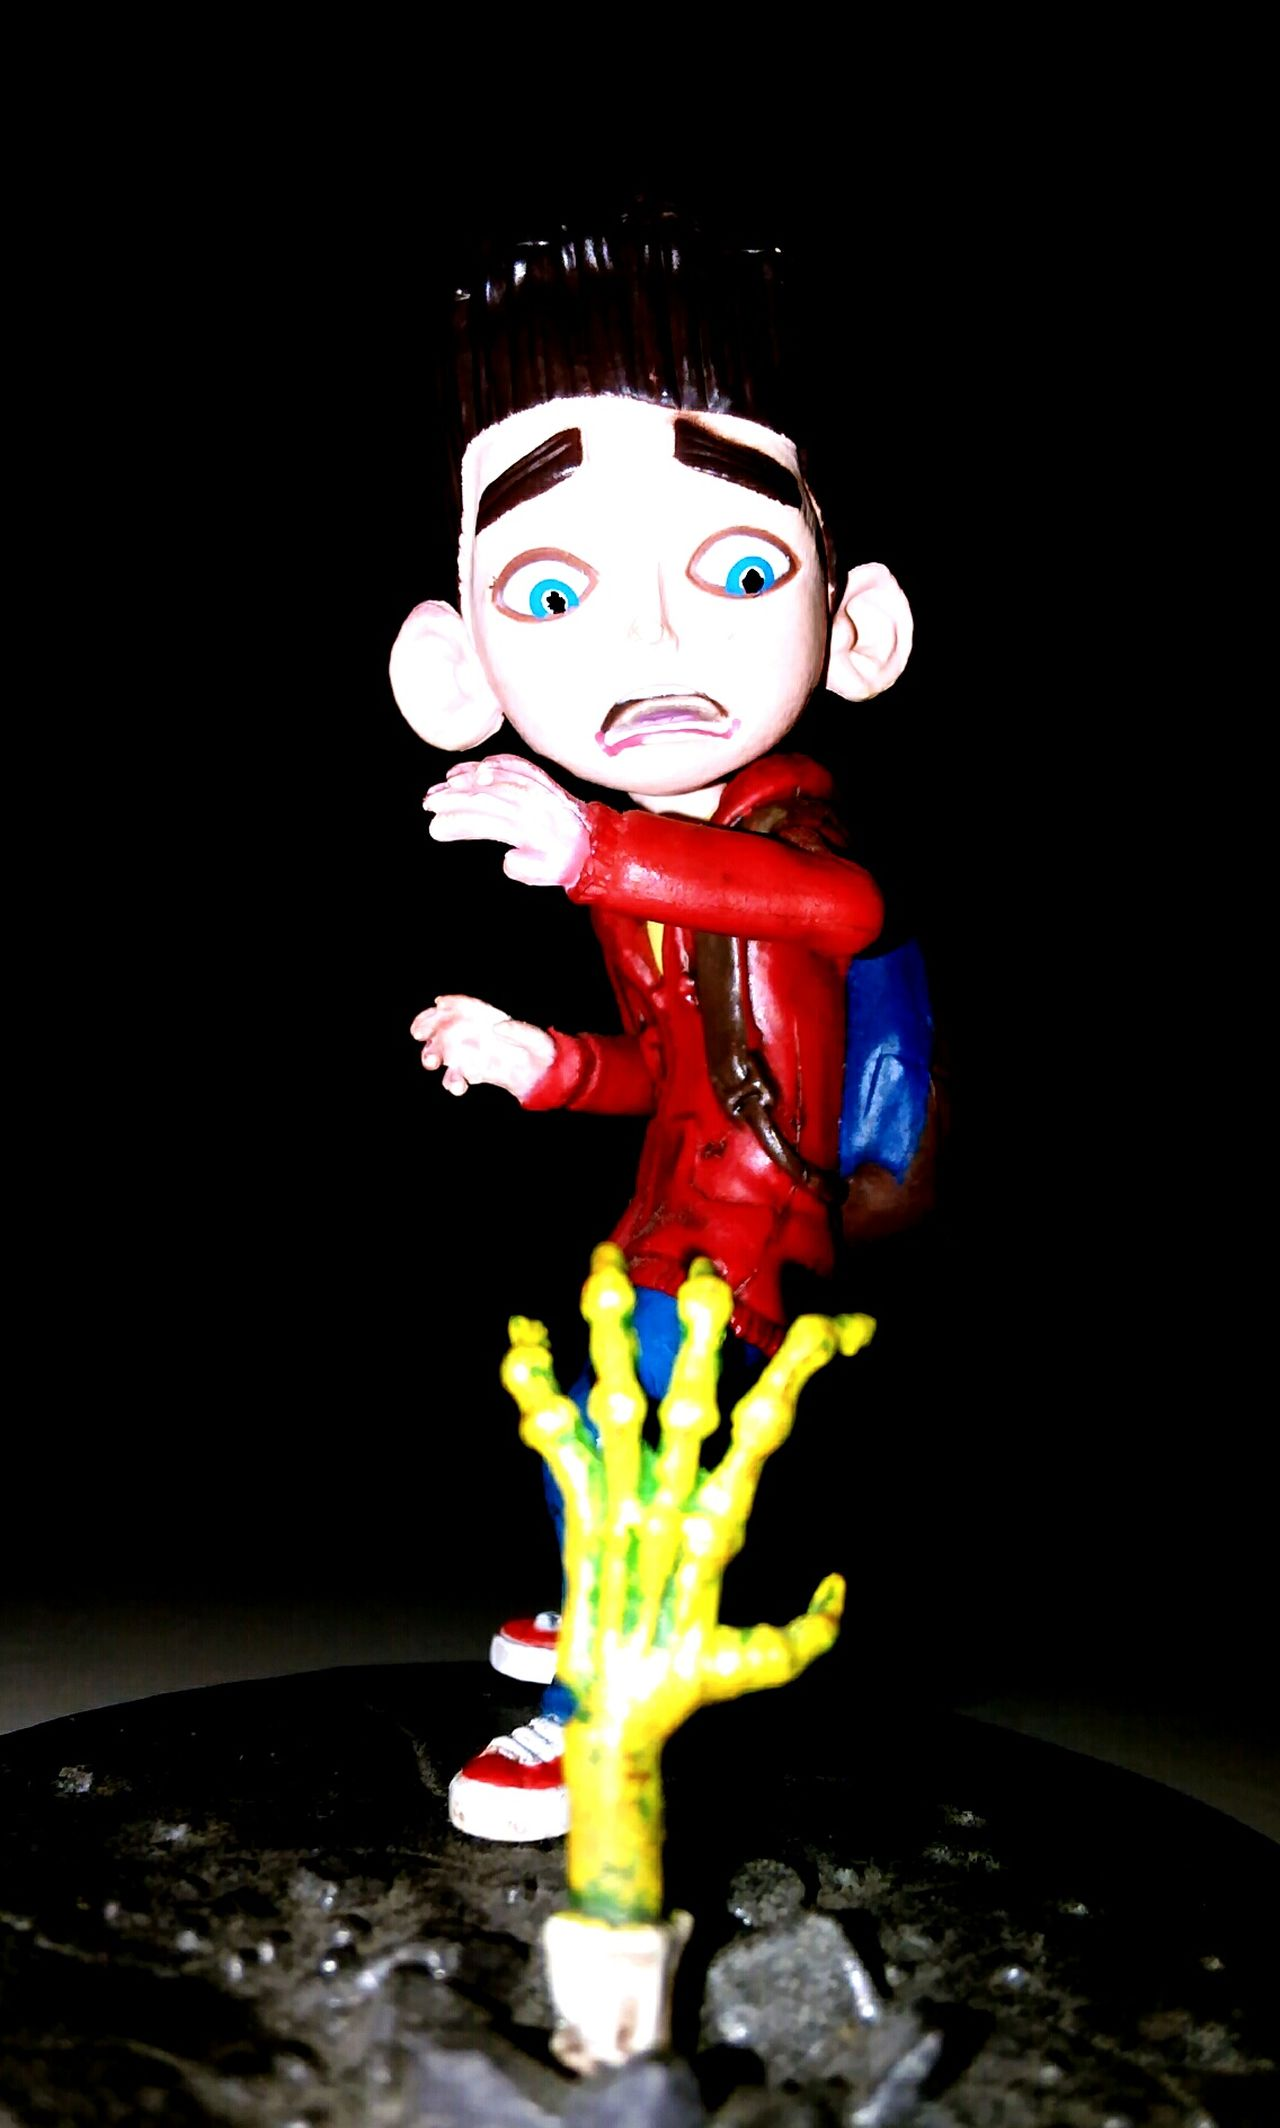 Multi Colored Figurine  Disguise Childhood Anthropomorphic Close-up Face Guard - Sport Paranorman Beauty Zombie Amazing Studio Photography Indoors  Boy Figurine  One Person Sculpture Human Face Looking At Camera Young Adult Single Object Nightphotography Greenhand Nornan Indoors  Uniqueness